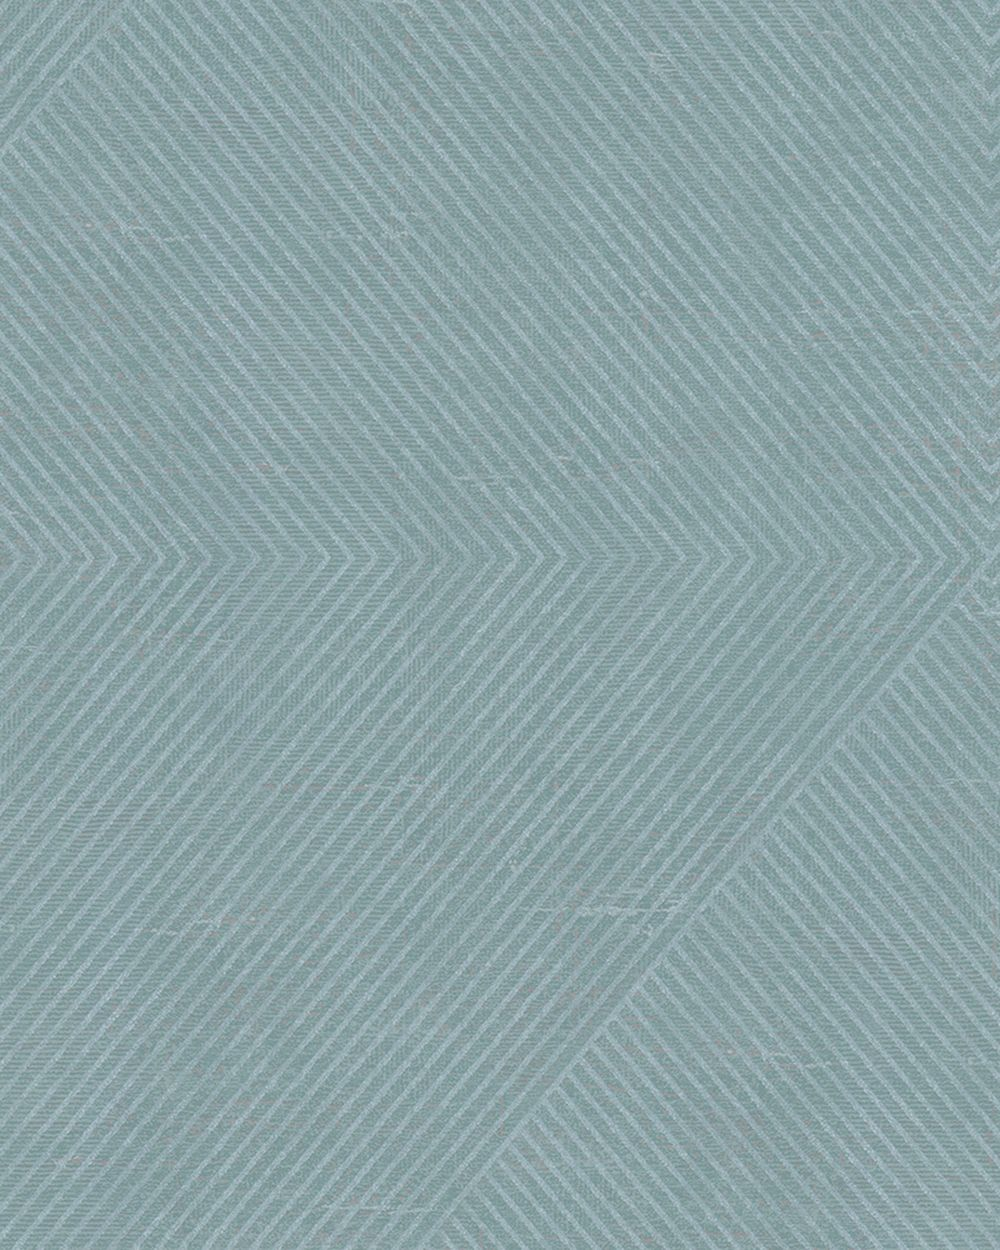 Tapete vlies marburg allure gestreift used blau rot for Tapete gestreift blau